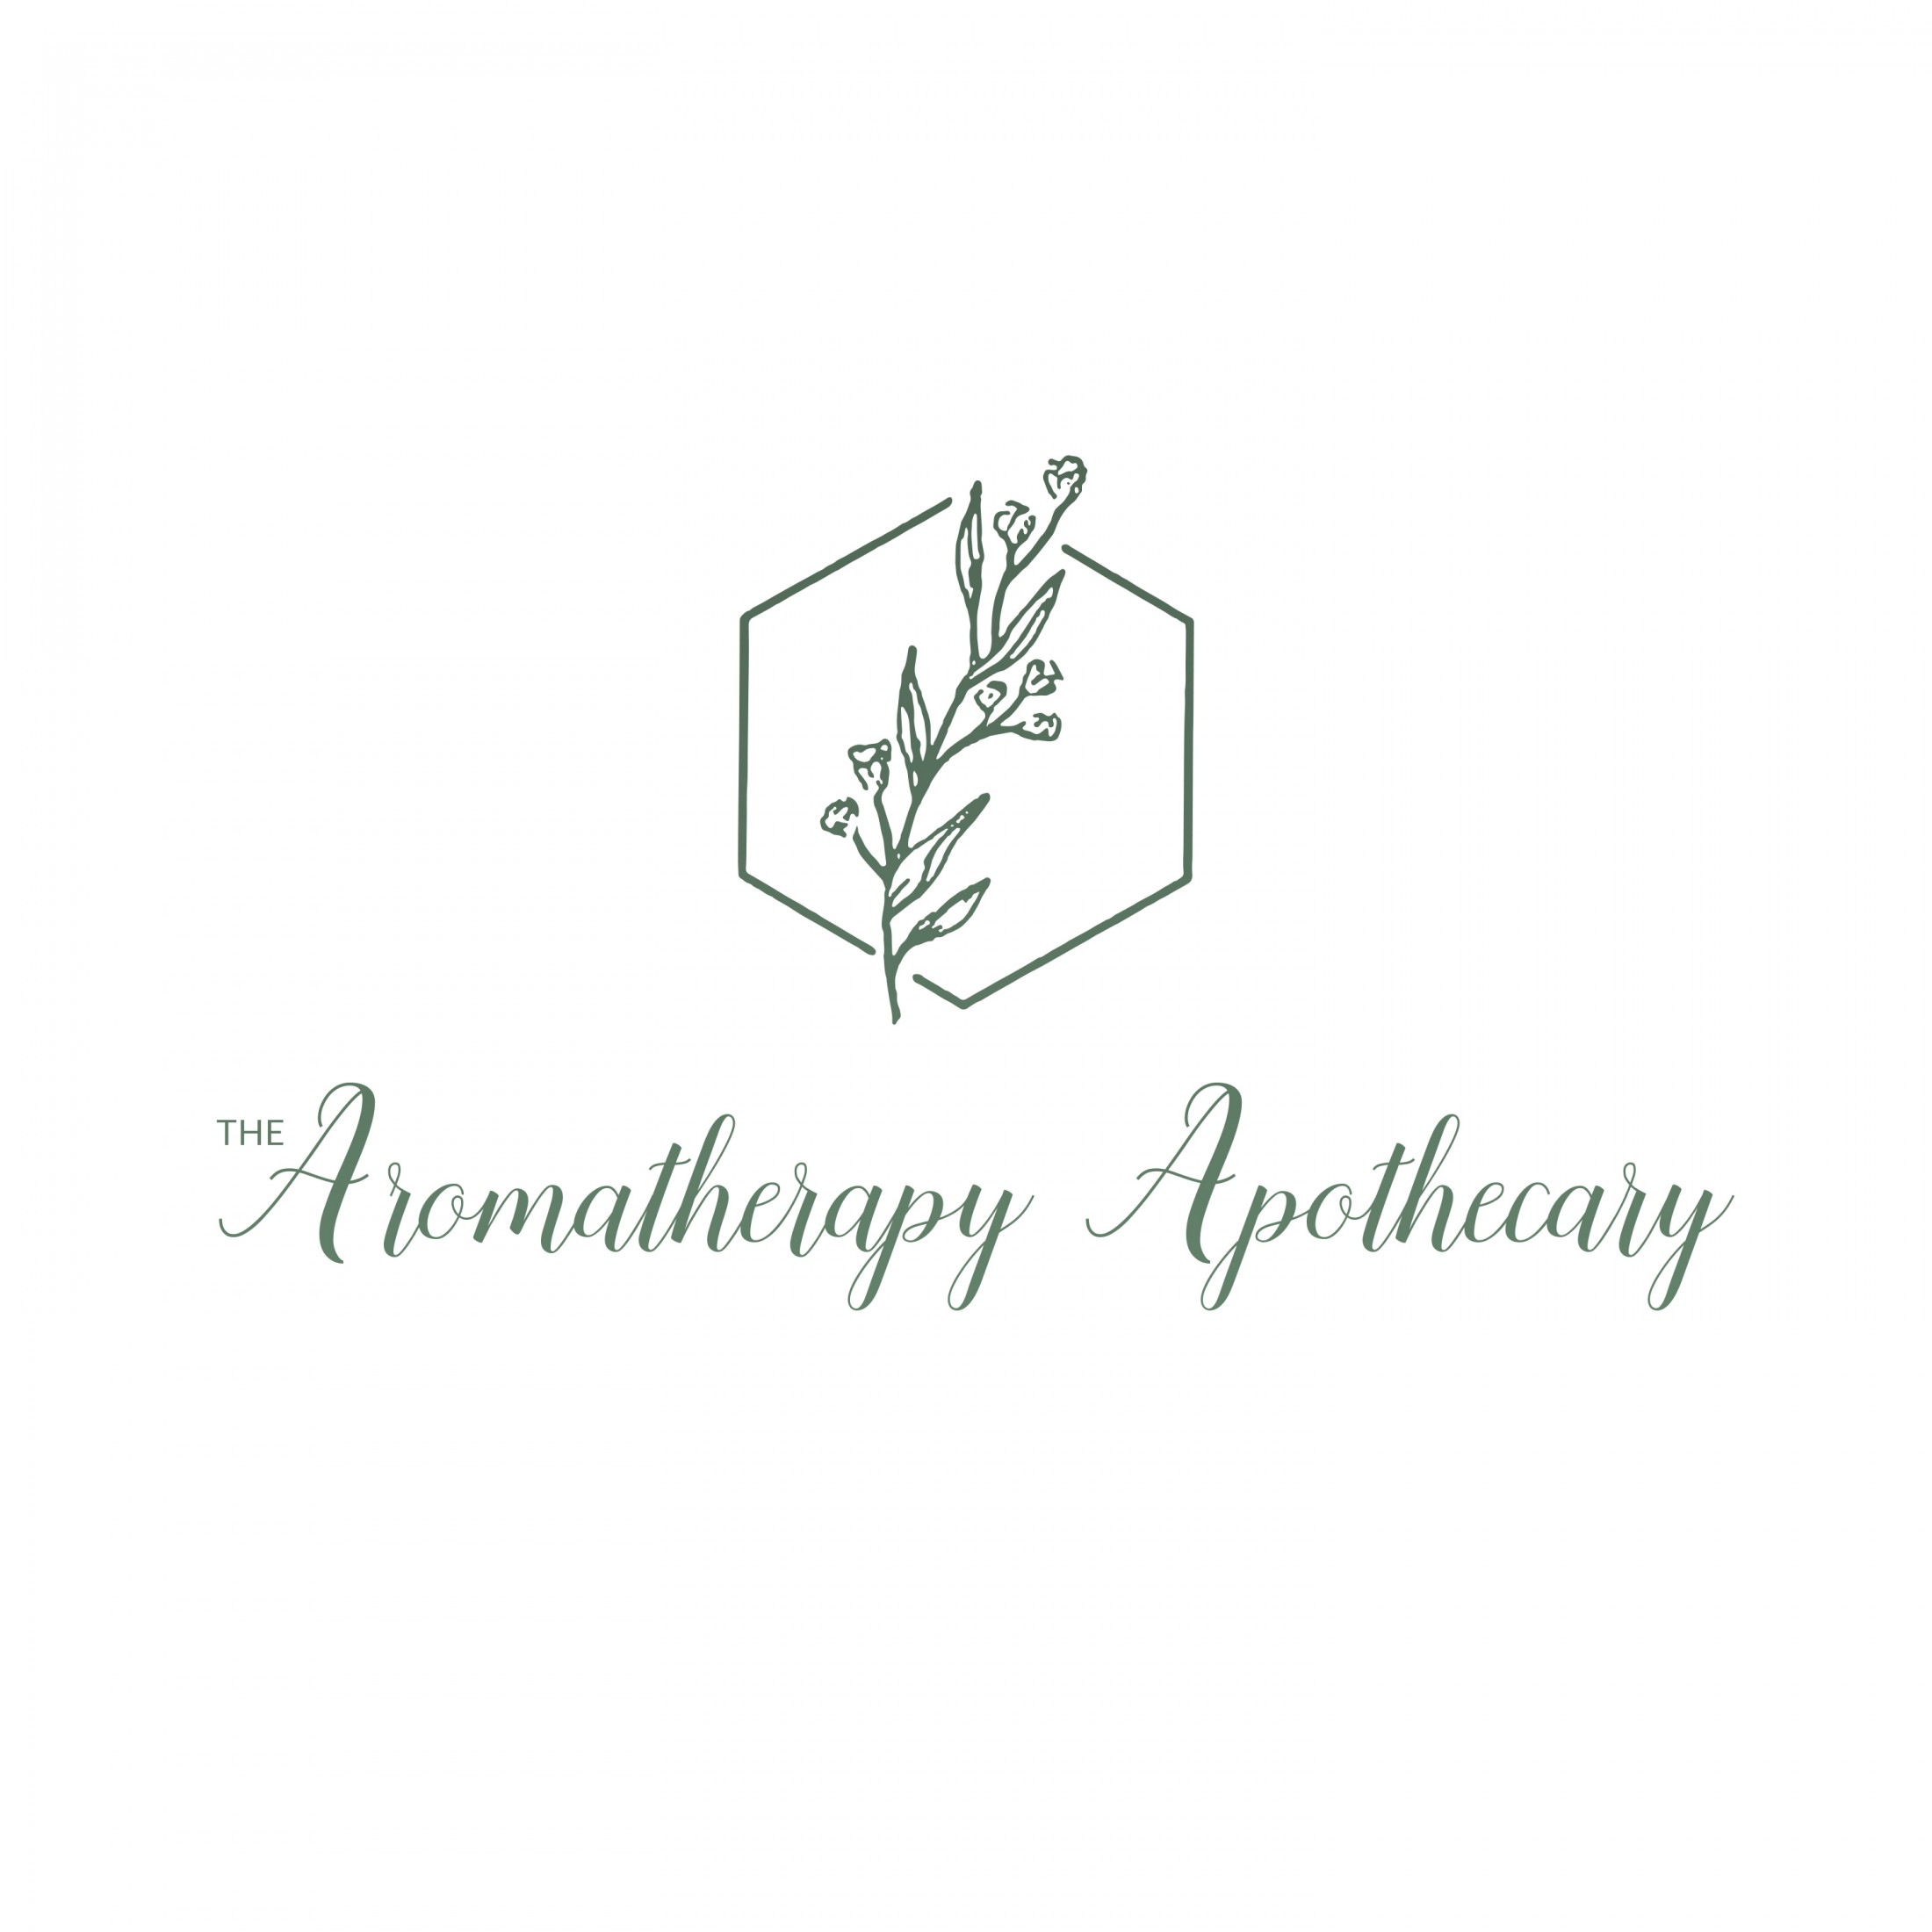 Nicola Salter Webinar: Discover how to grow your aromatherapy business by adding more transformation and value